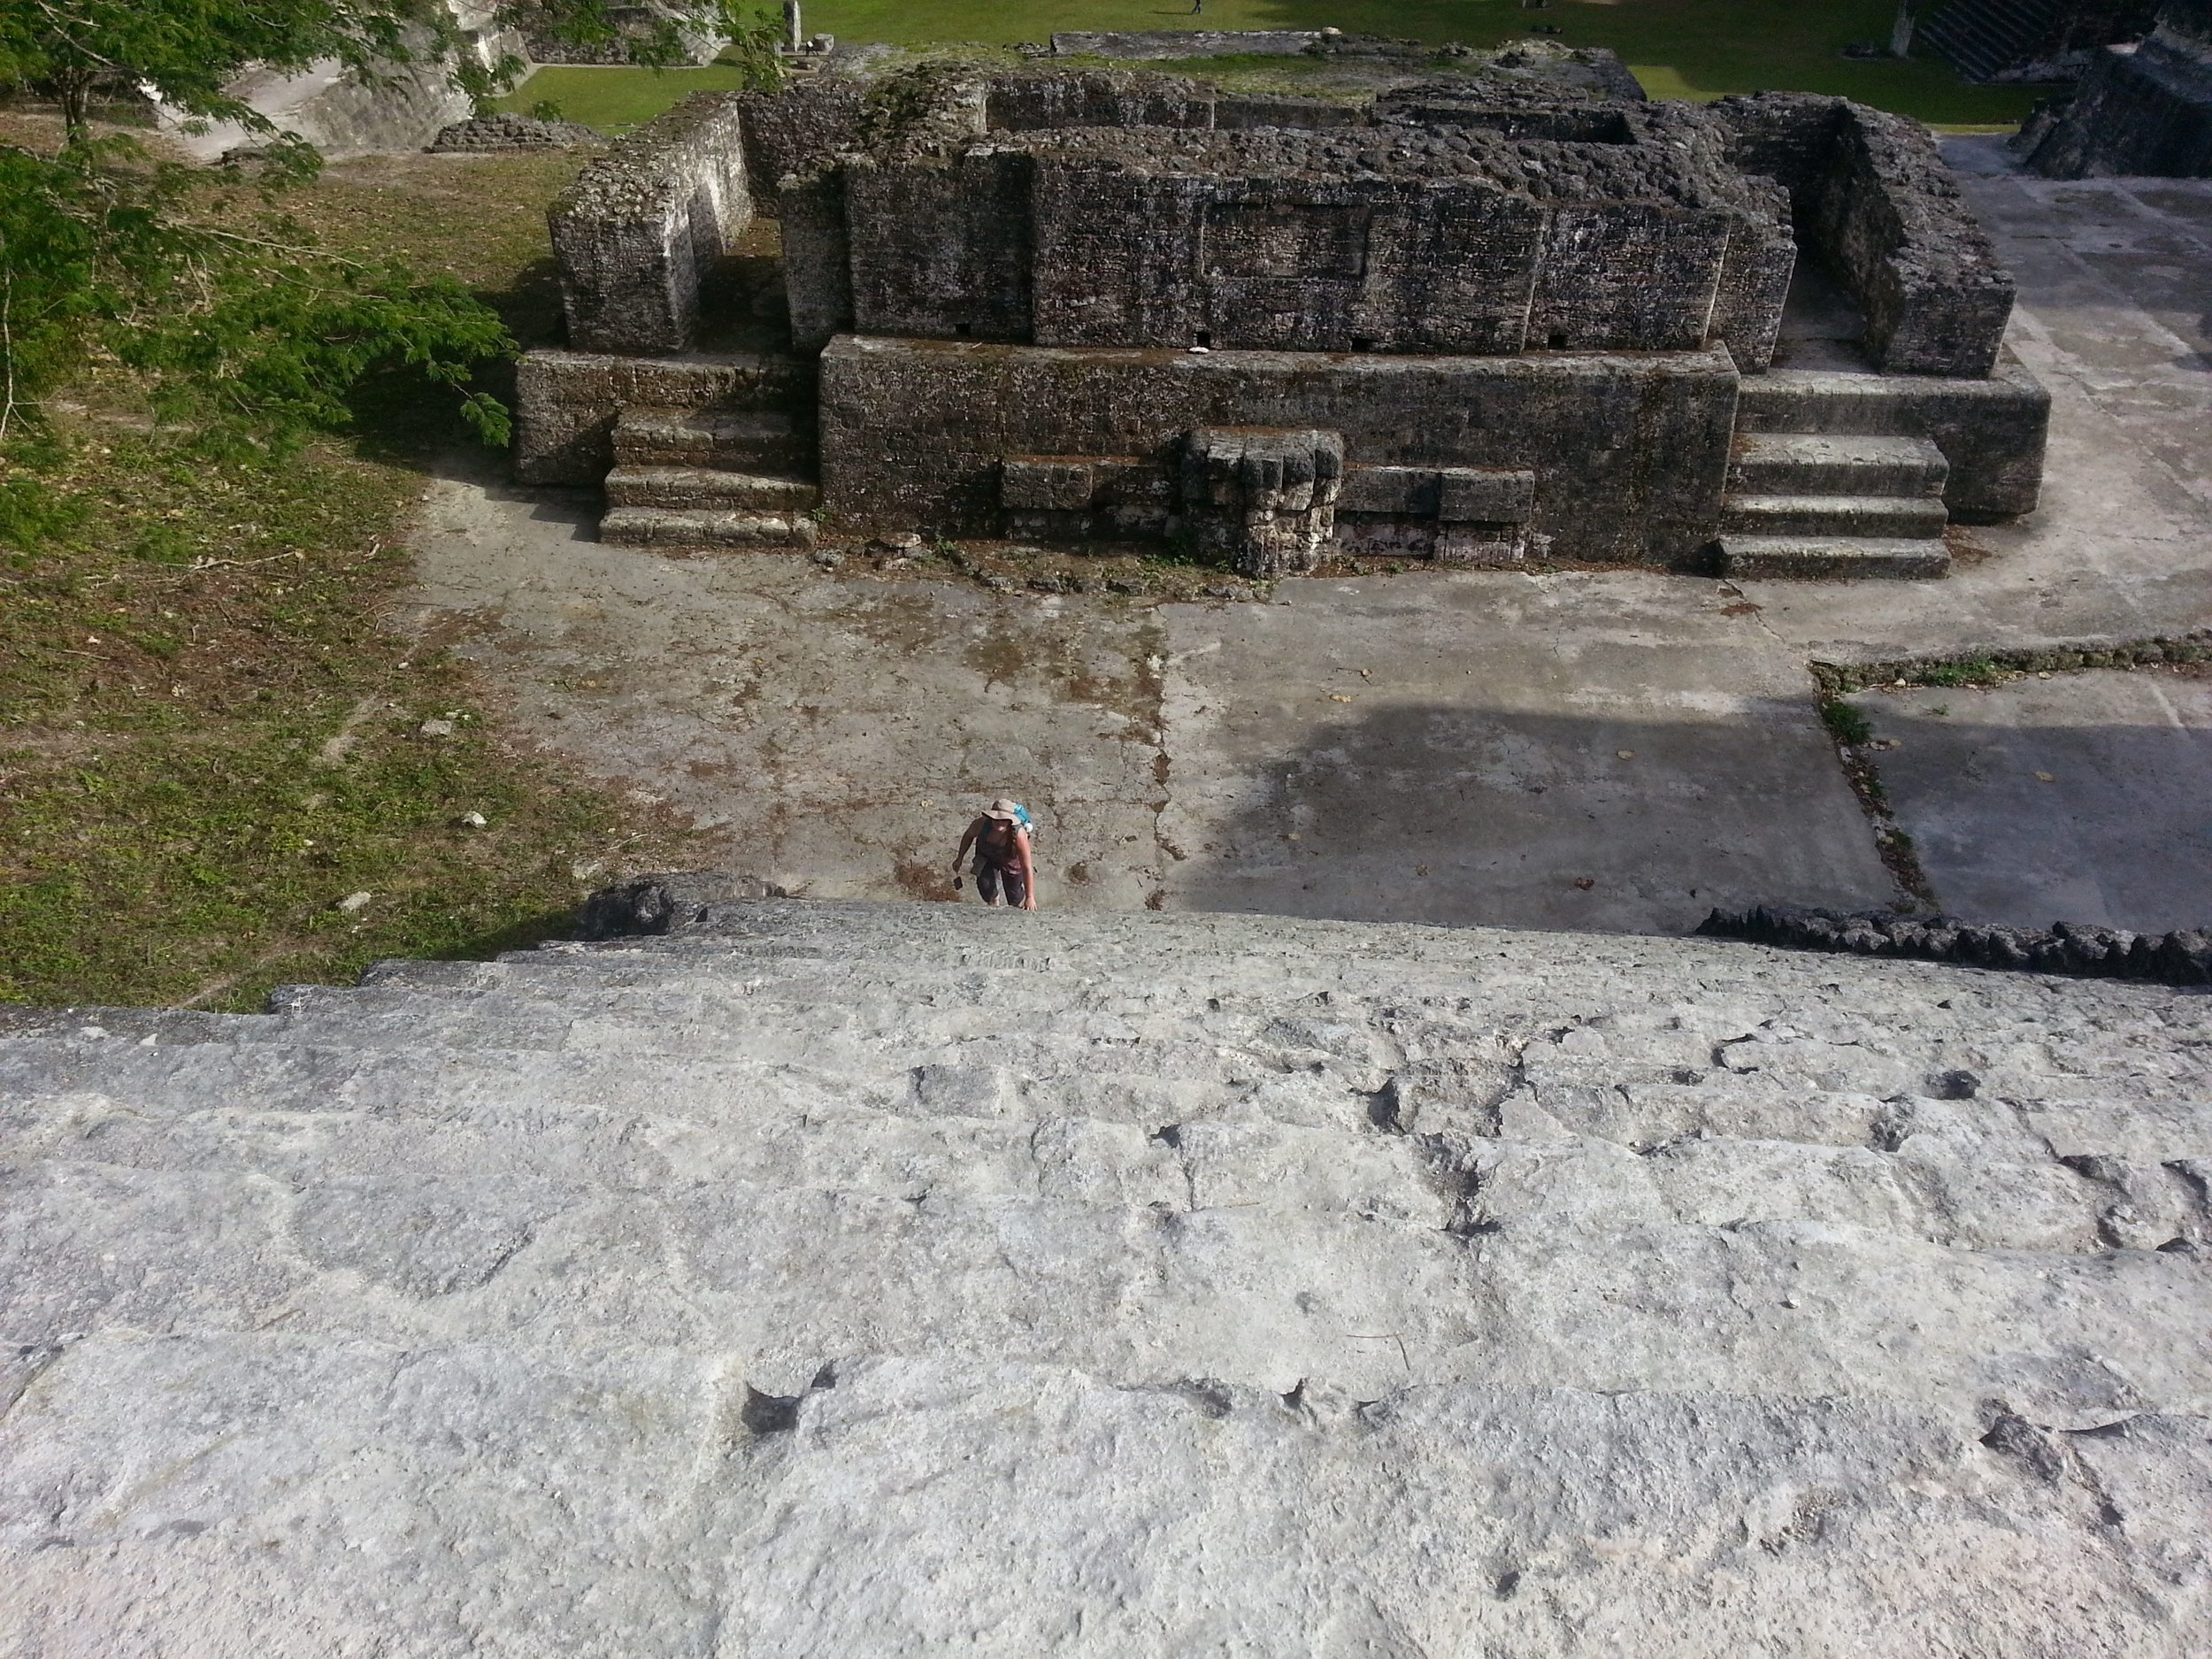 Climbing up the stone stairs of the North Acropolis. Now imagine this in the rain or on a dewy morning.